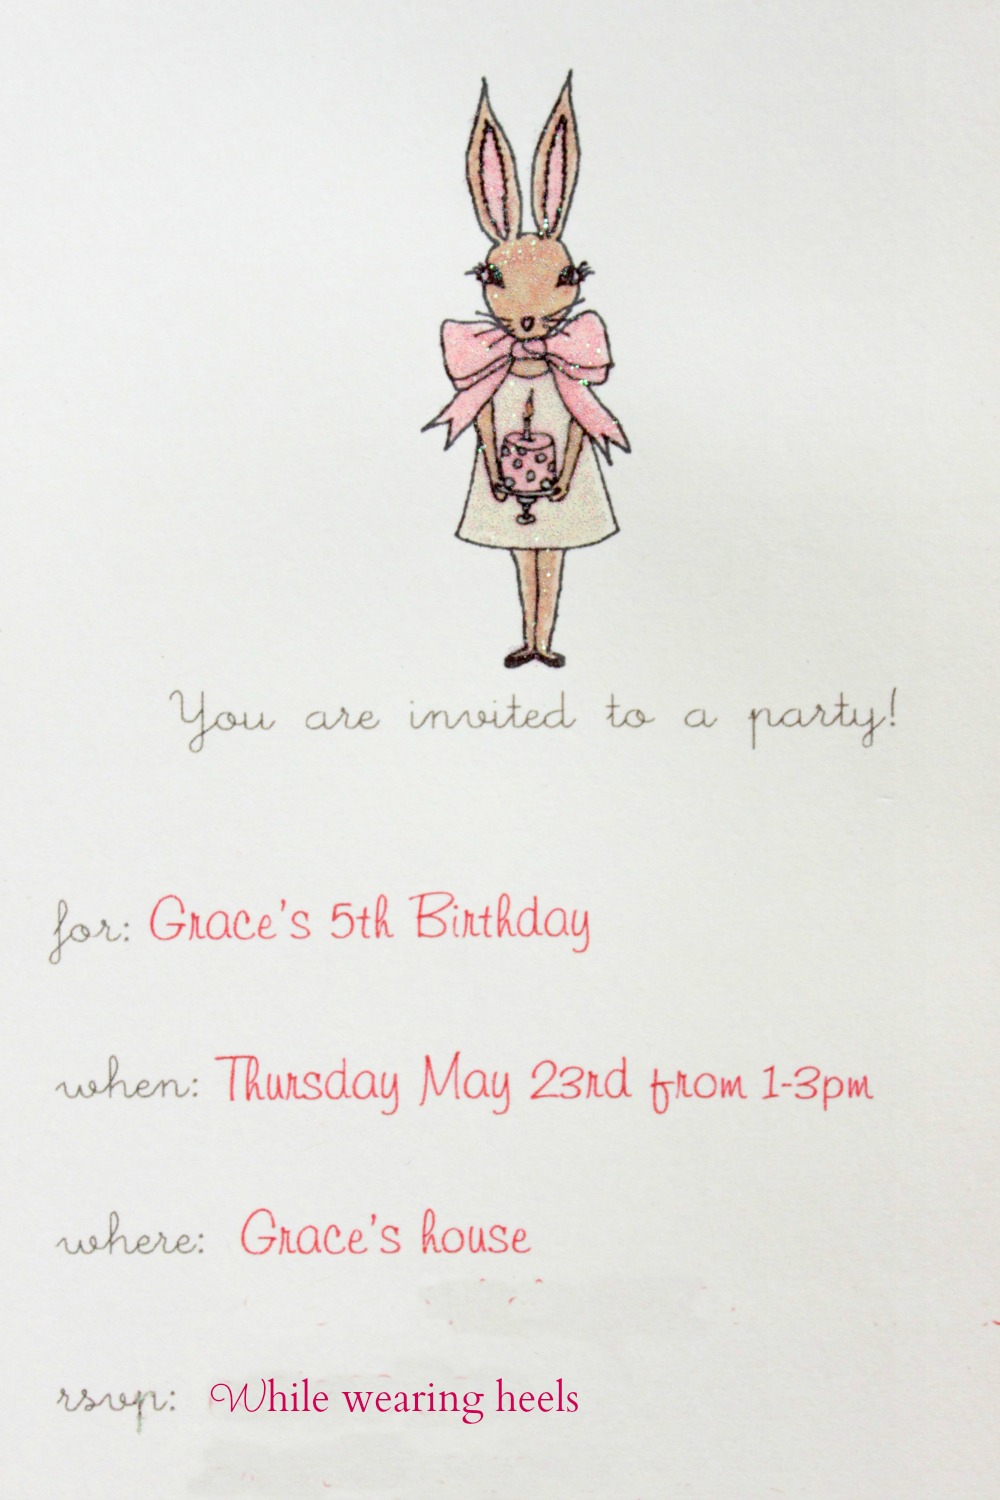 While Wearing Heels Bunny Themed Birthday Party The Big Reveal